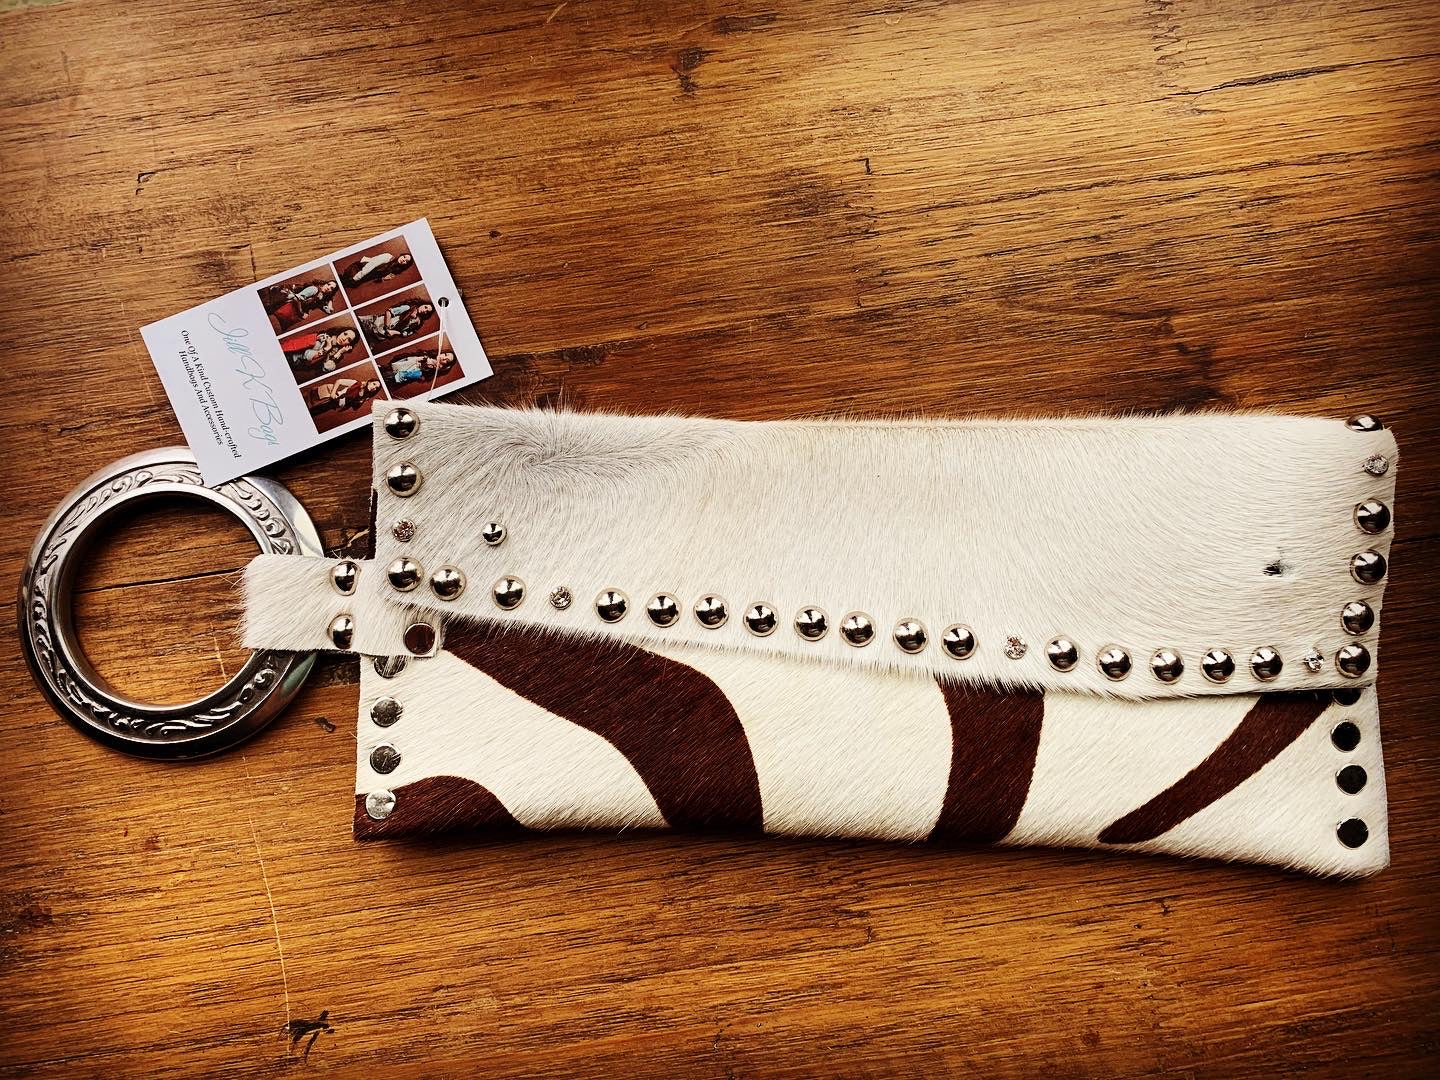 Tan and brown hide wristlets